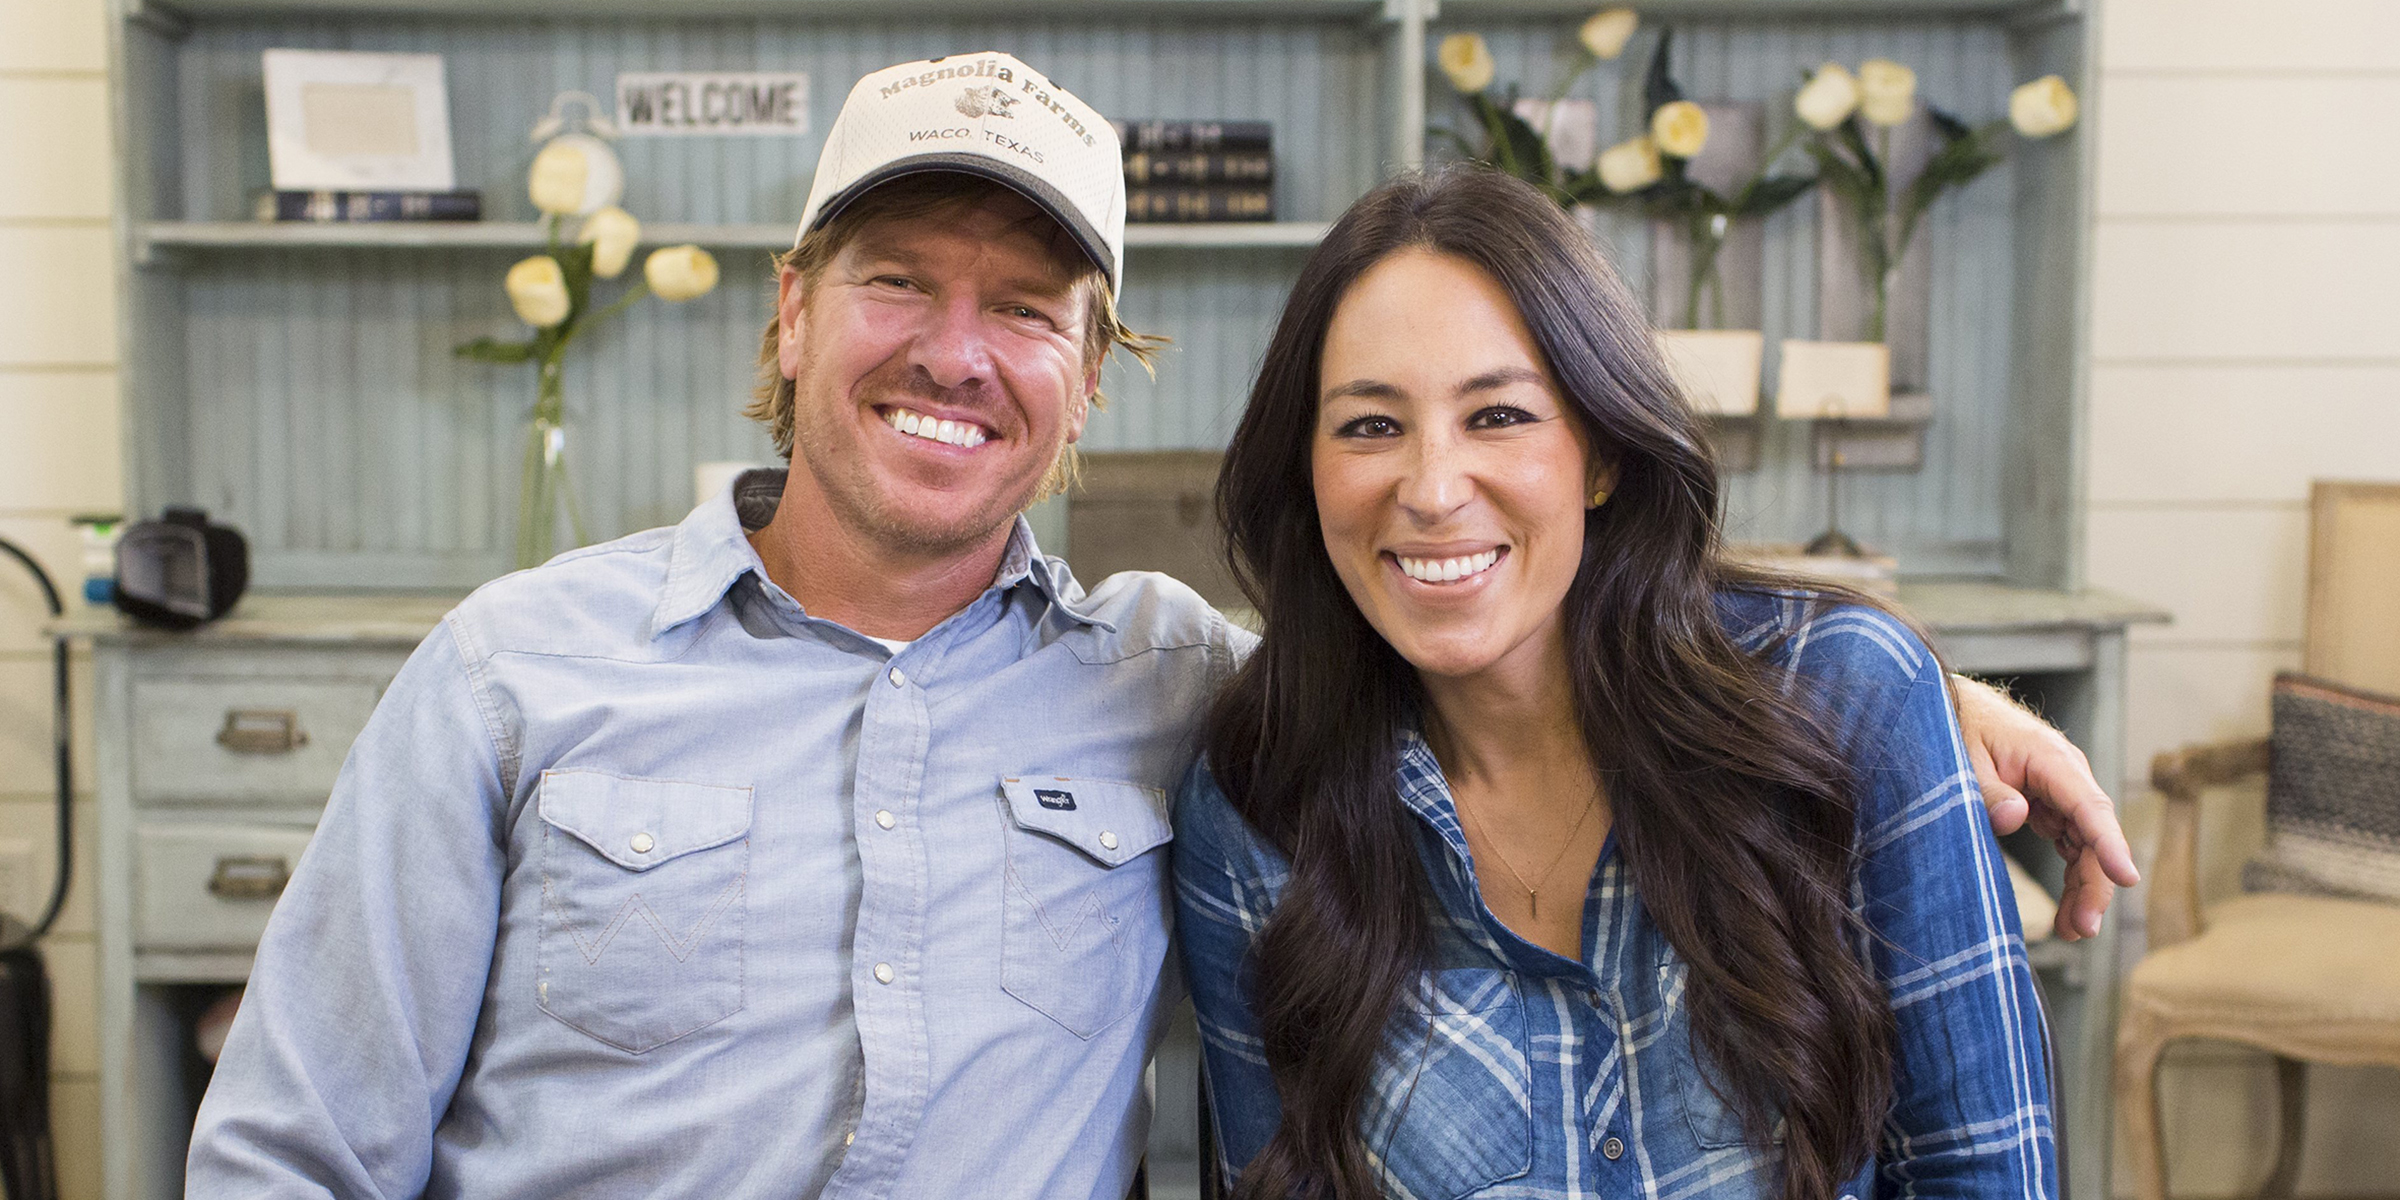 Chip and Joanna Gaines are opening a hotel — here's everything we know